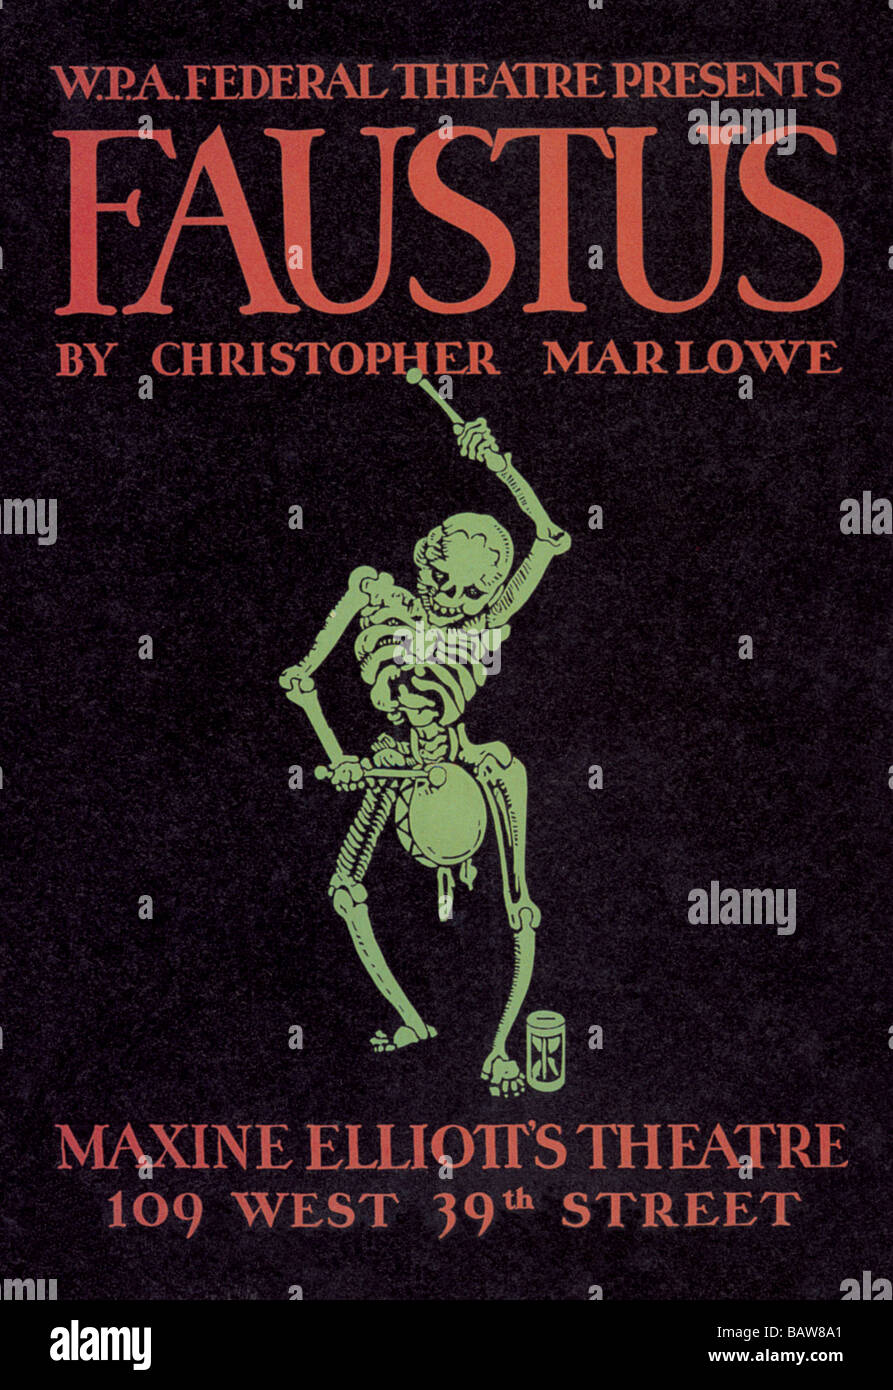 Faustus Presented by WPA Federal Theater Division - Stock Image